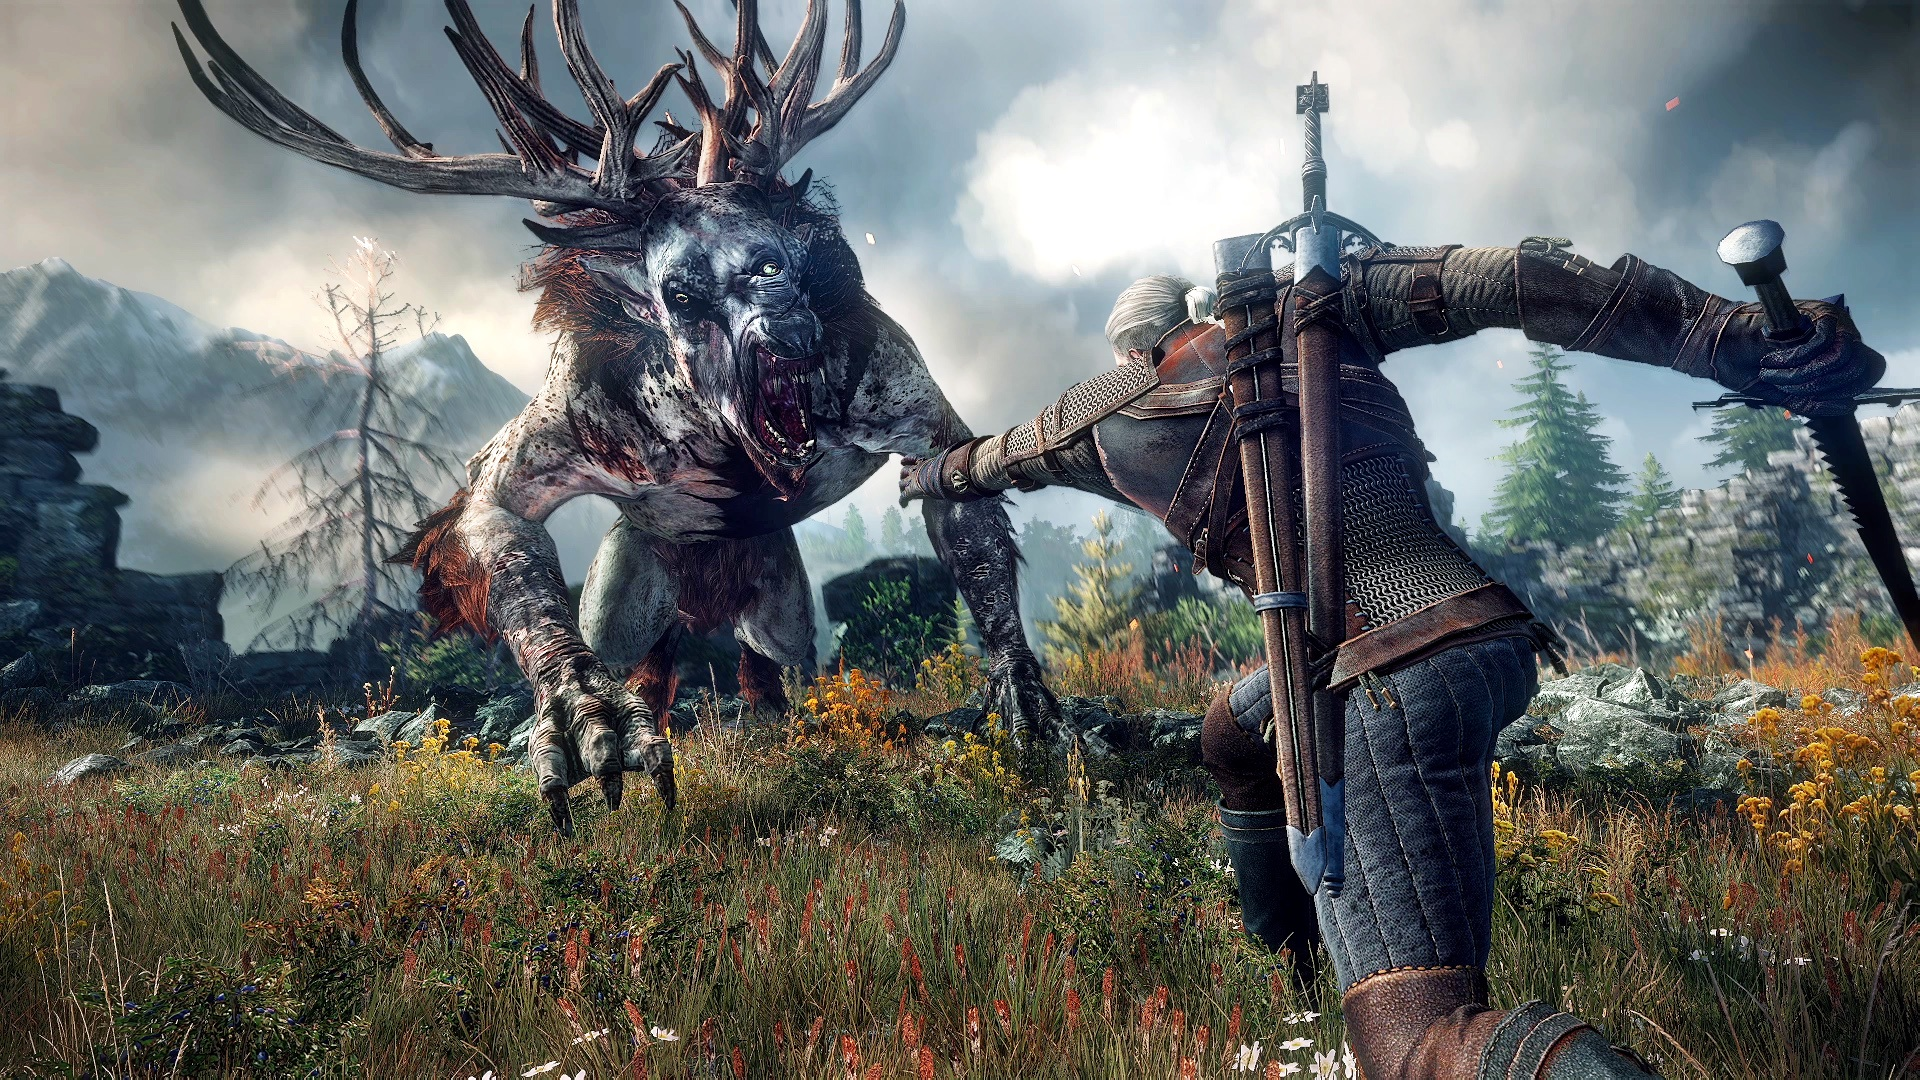 Photo of Cel mai bun combat mod al lui The Witcher 3